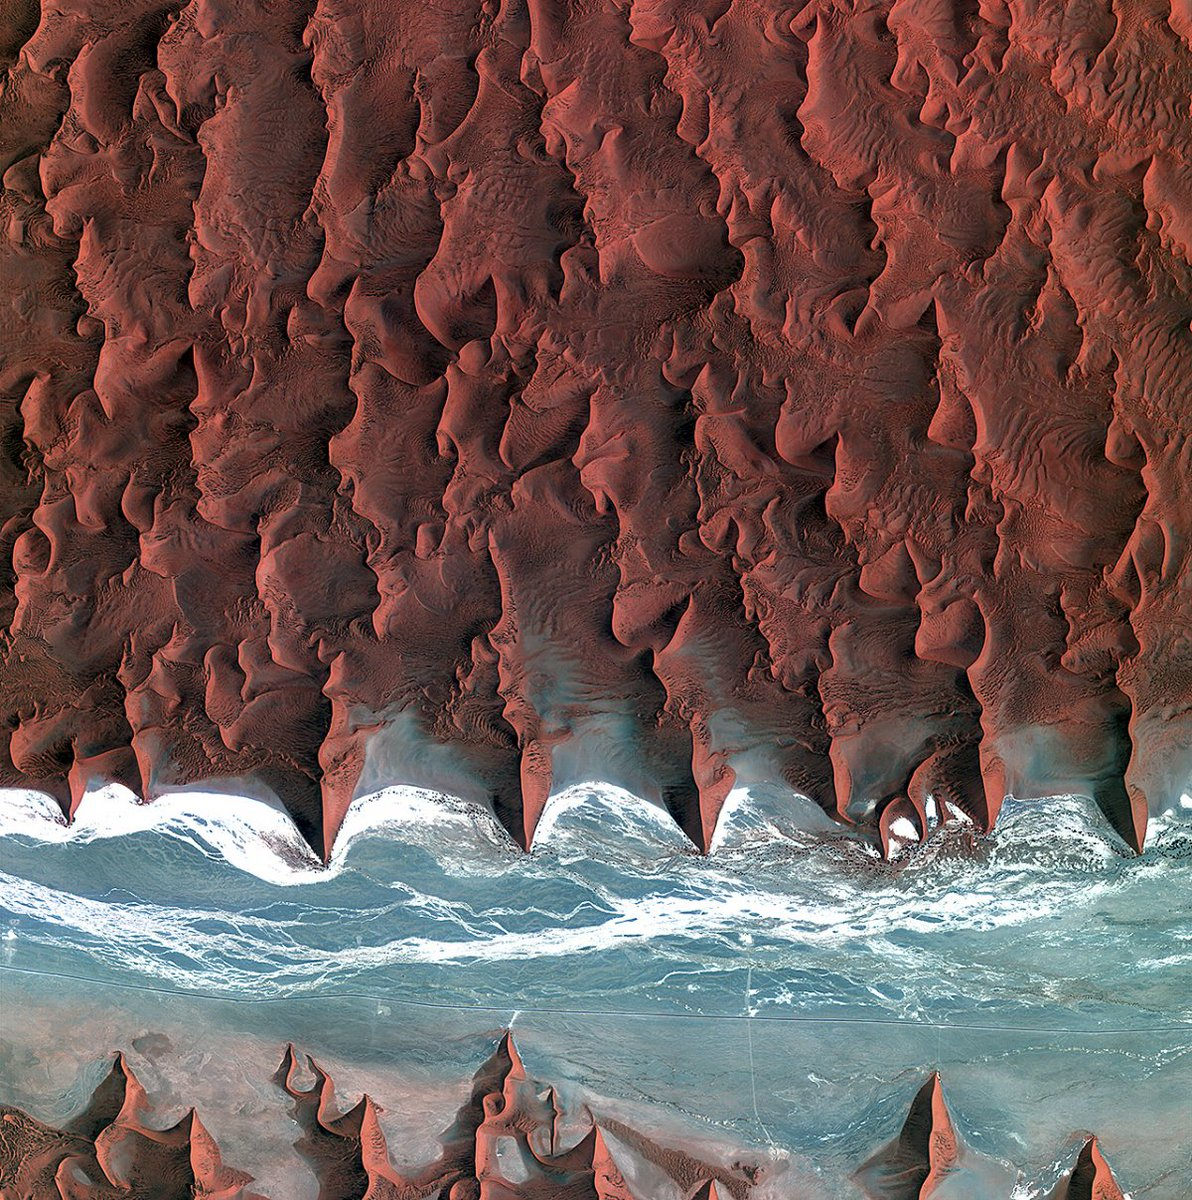 A decade of observing Earth from space gives breathtaking views http://t.co/rH1qndfTG9  via @businessinsider http://t.co/GDOootlXNp